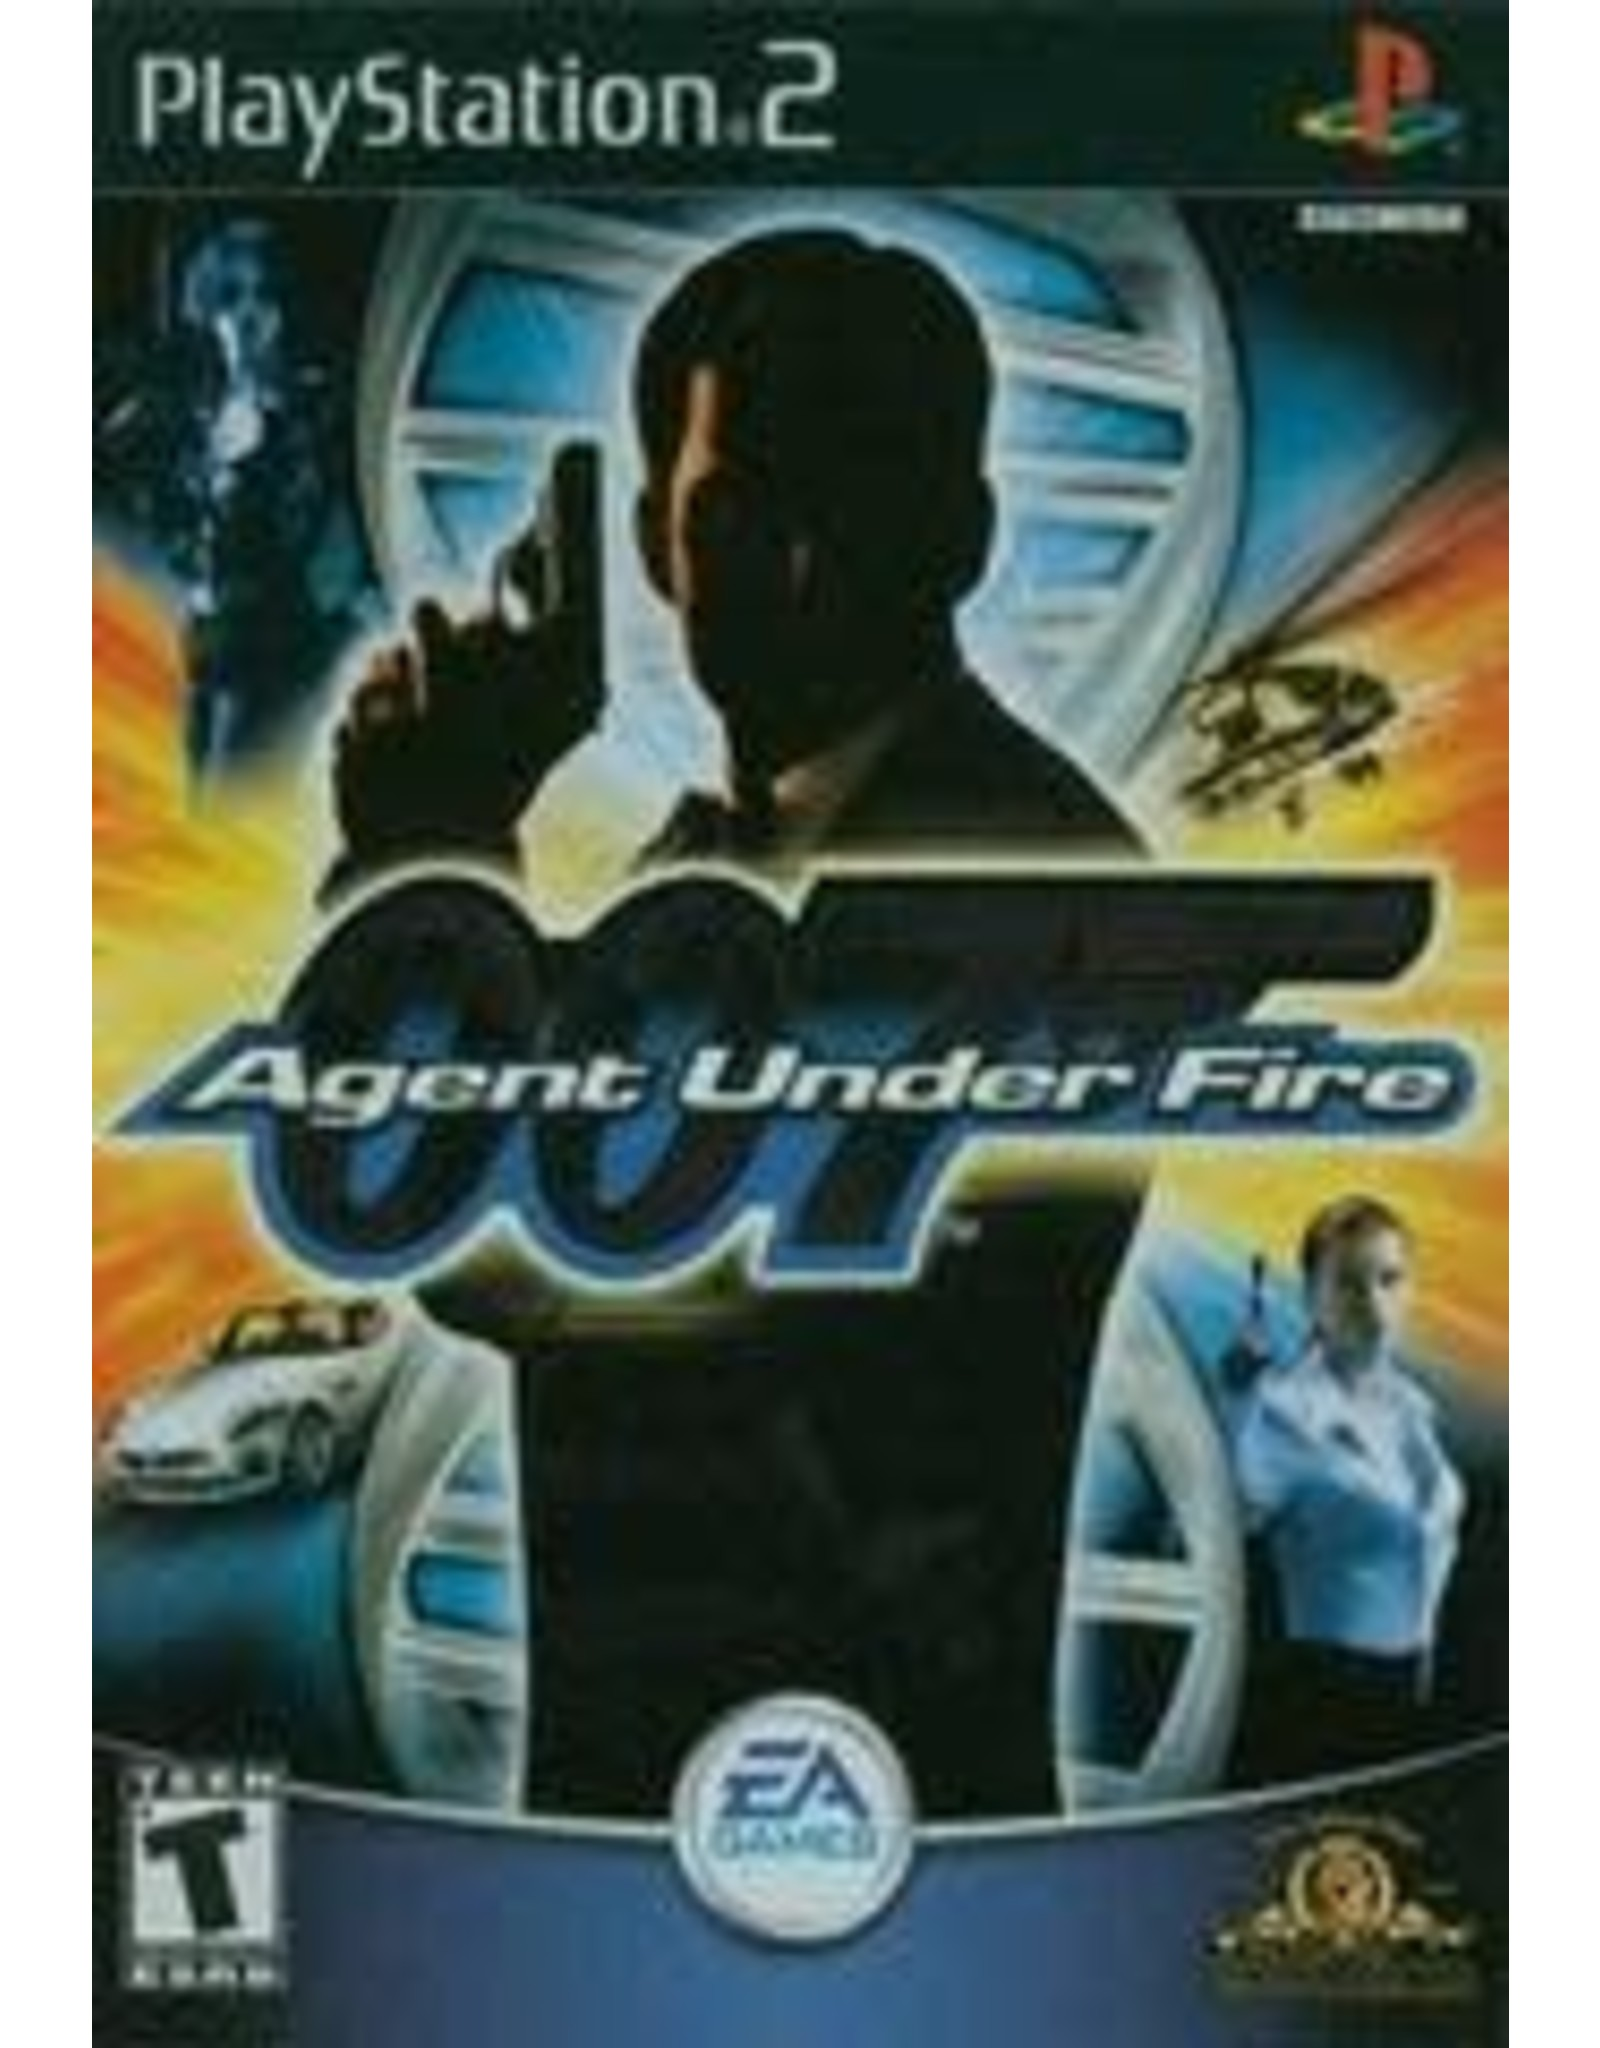 Playstation 2 007 Agent Under Fire (No Manual)